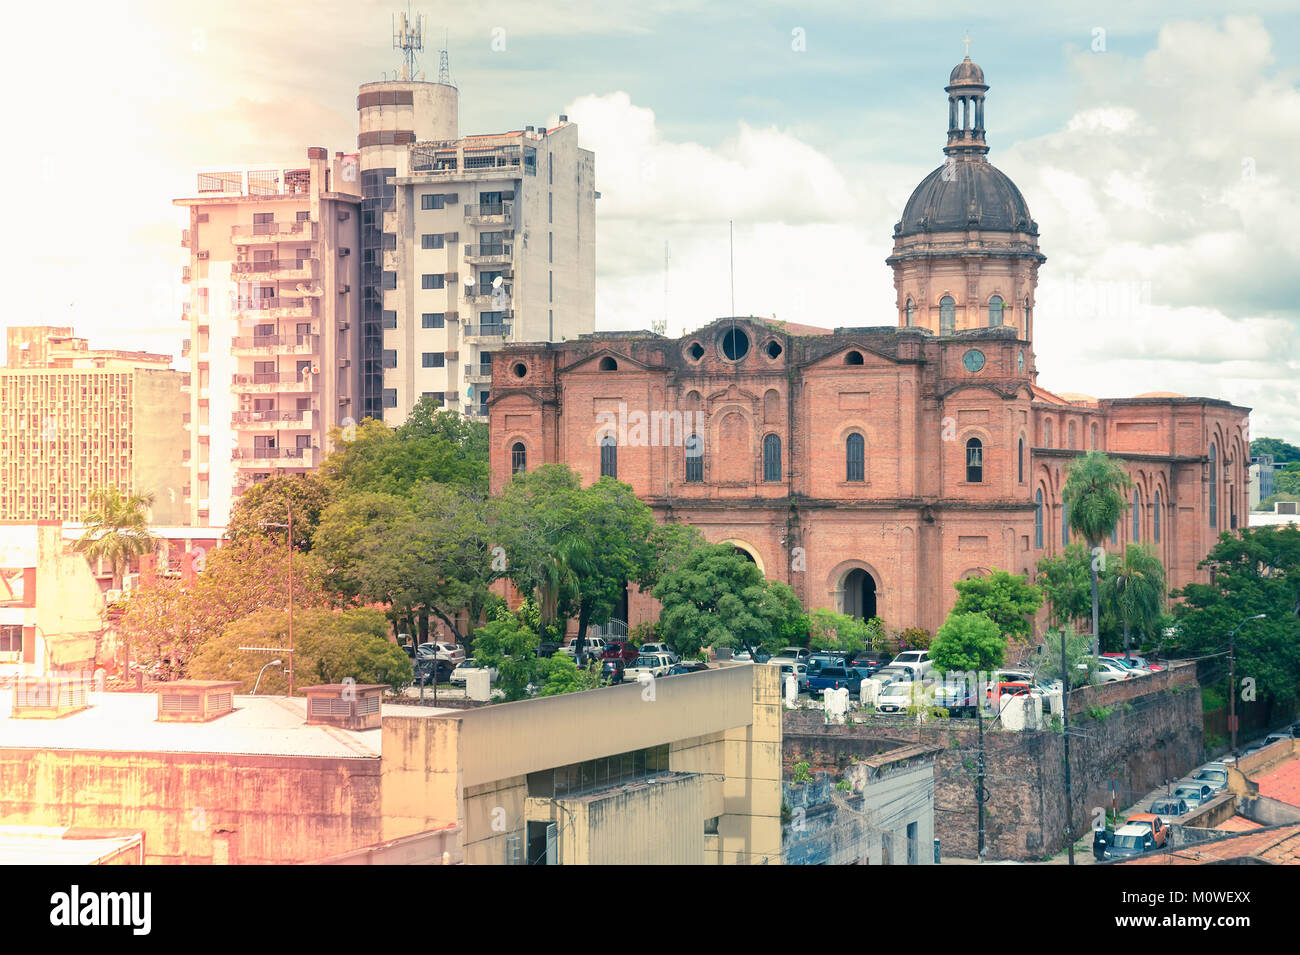 Paraguay, the capital. Asuncion: sights and photos 86